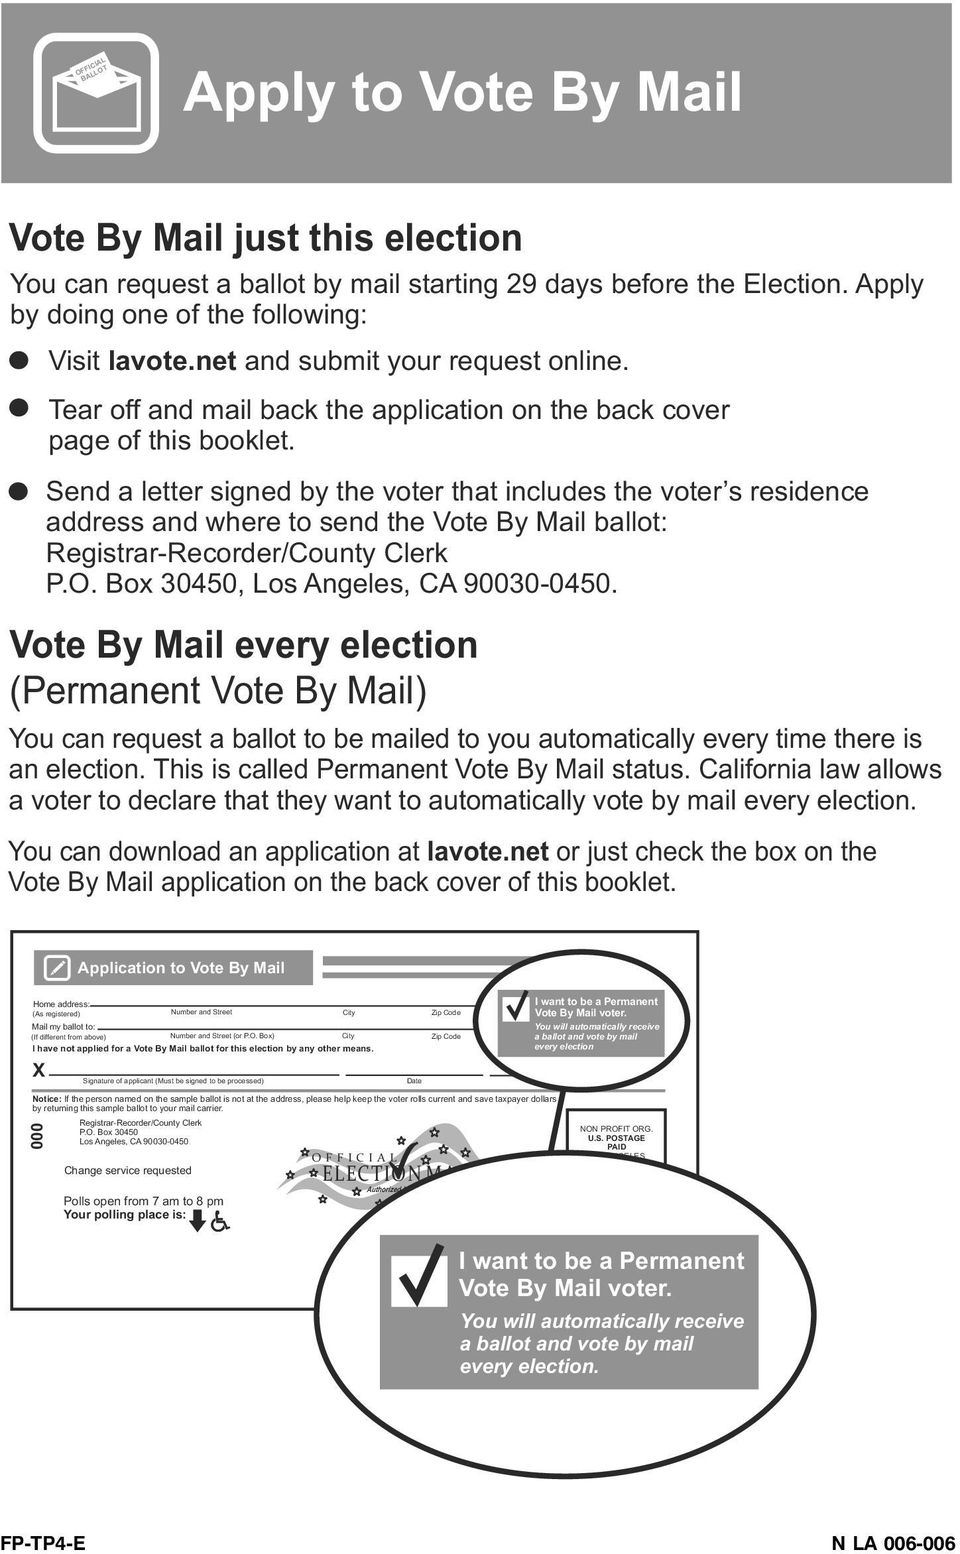 Send a letter signed by the voter that includes the voter s residence address and where to send the Vote By Mail ballot: Registrar-Recorder/County Clerk P.O. Box 30450, Los Angeles, CA 90030-0450.